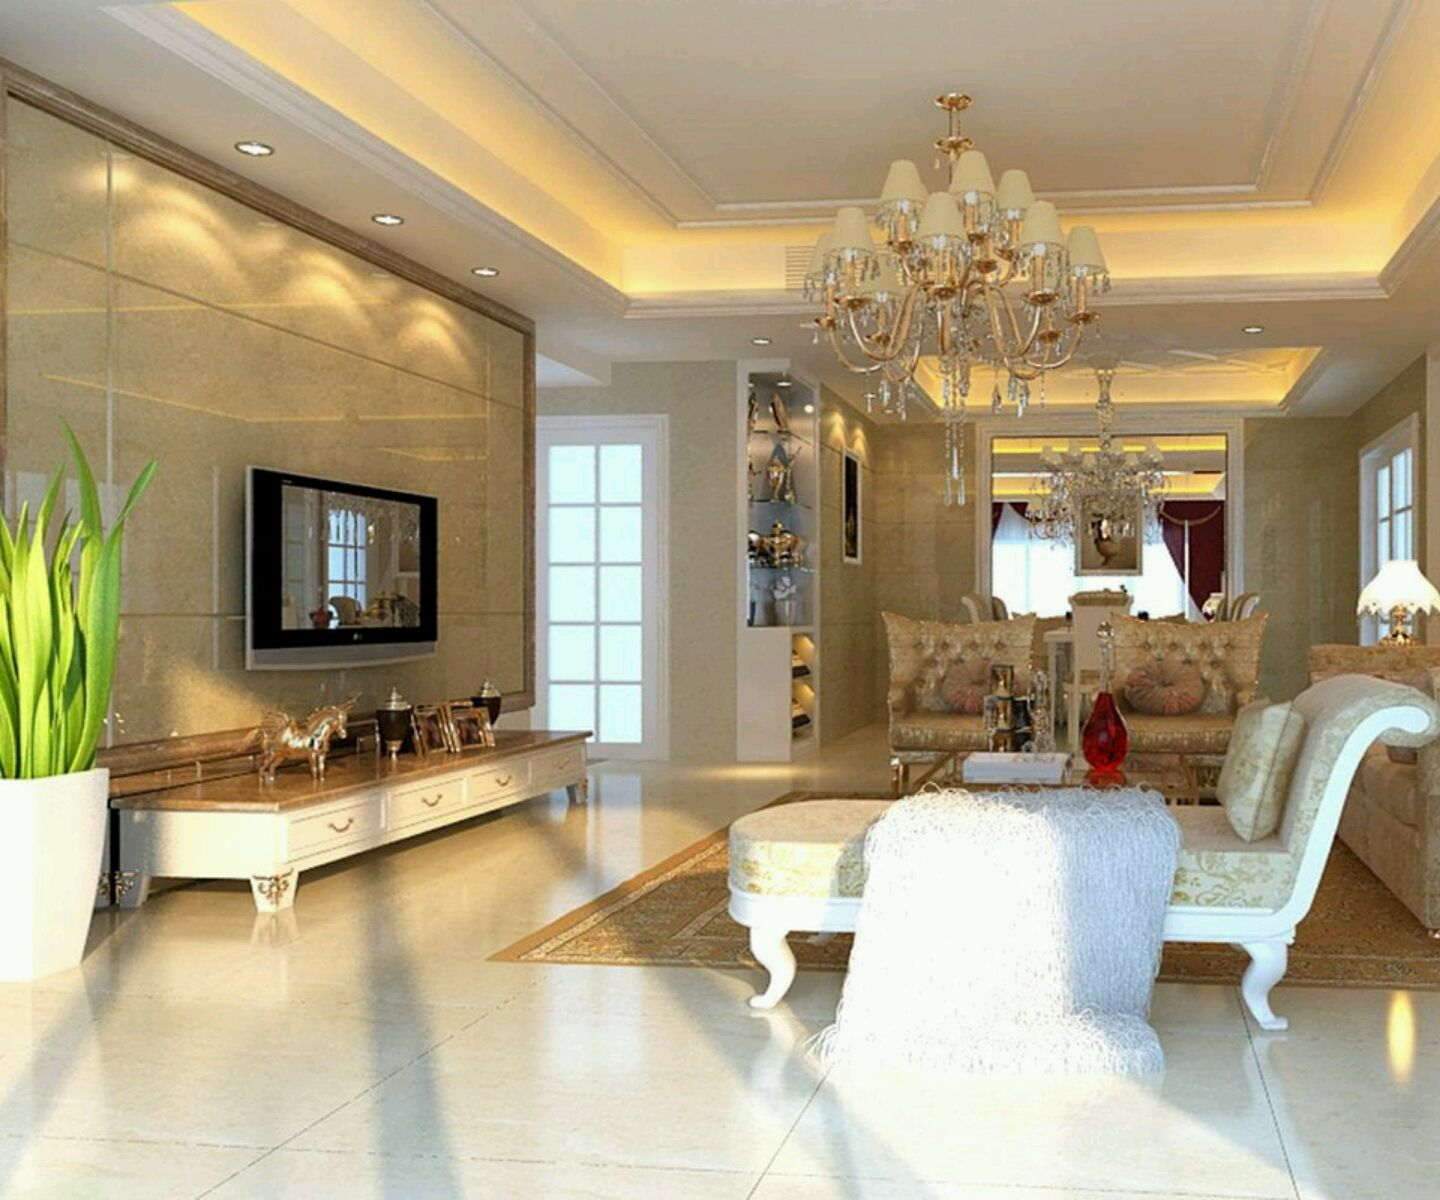 Home Design Ideas Living Room: Luxury Homes Interior Decoration Living Room Designs Ideas